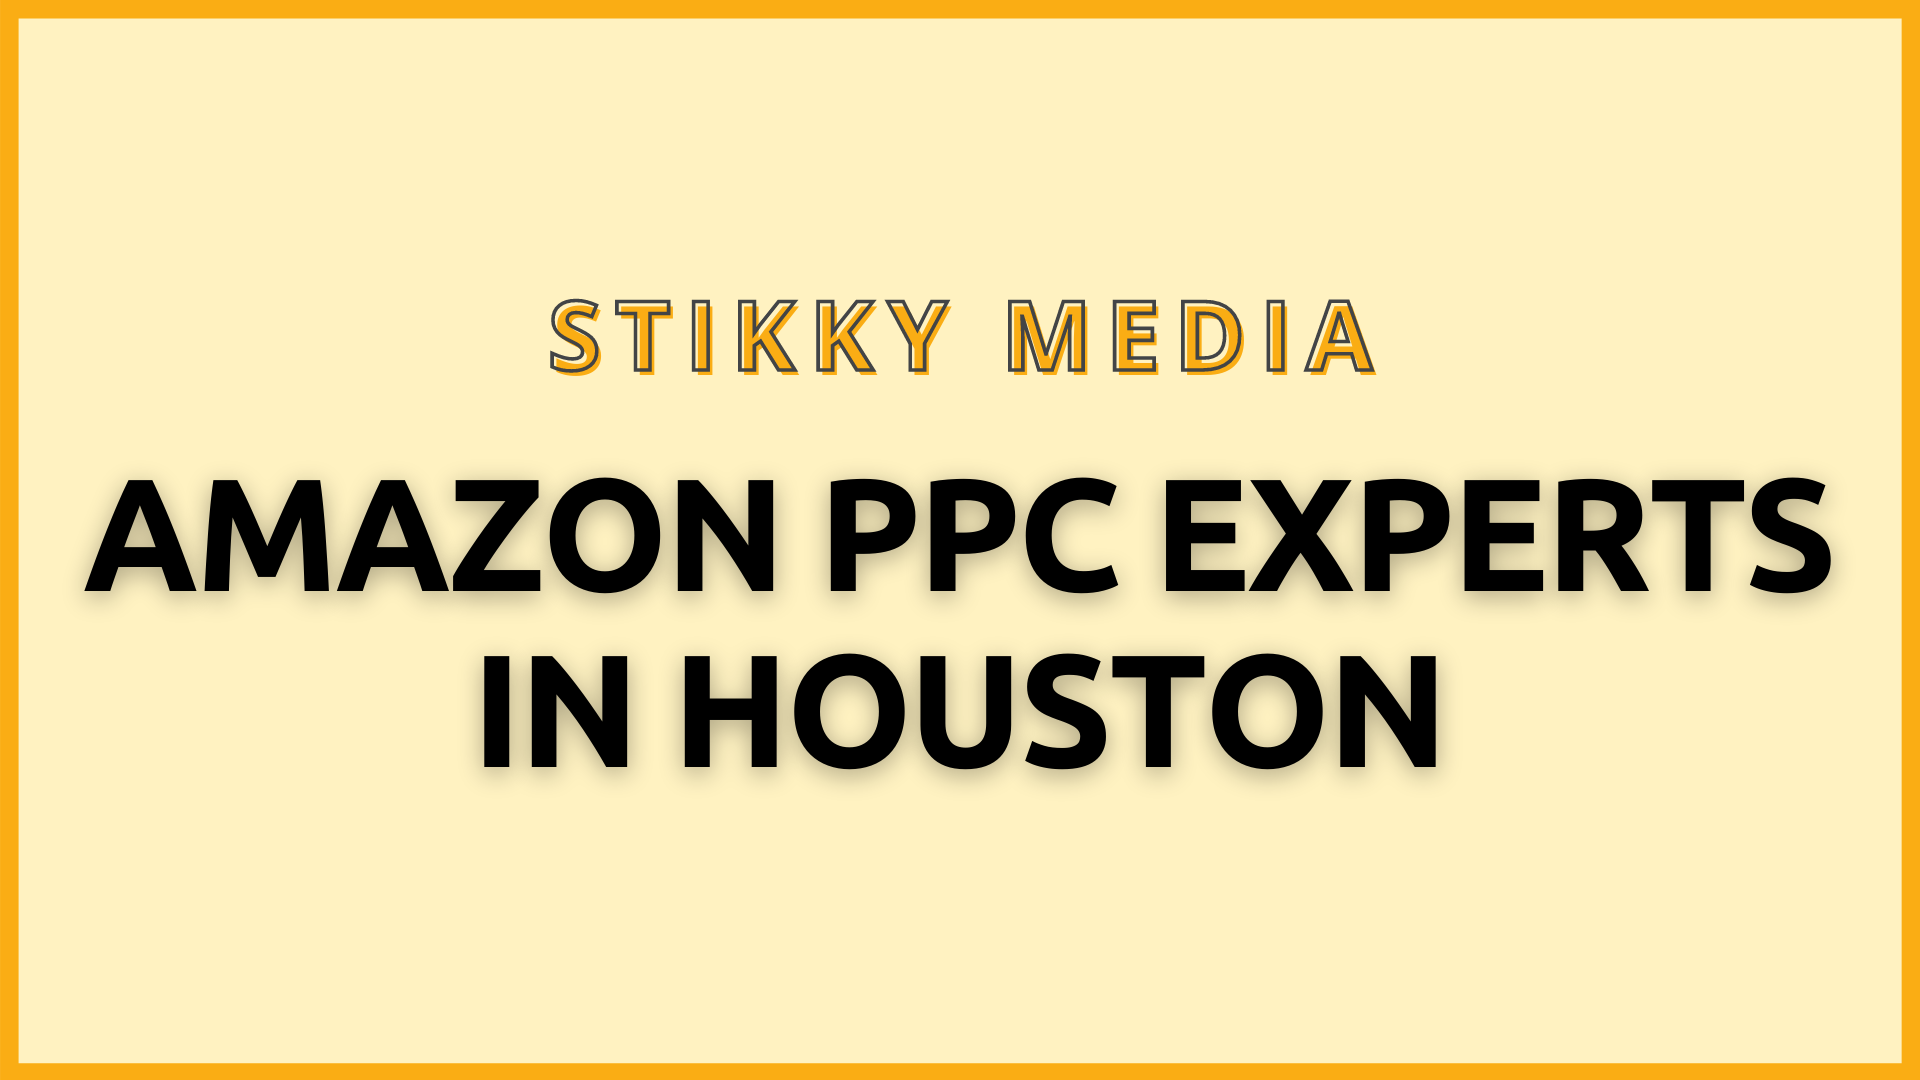 Amazon PPC management in Houston - Stikky Media